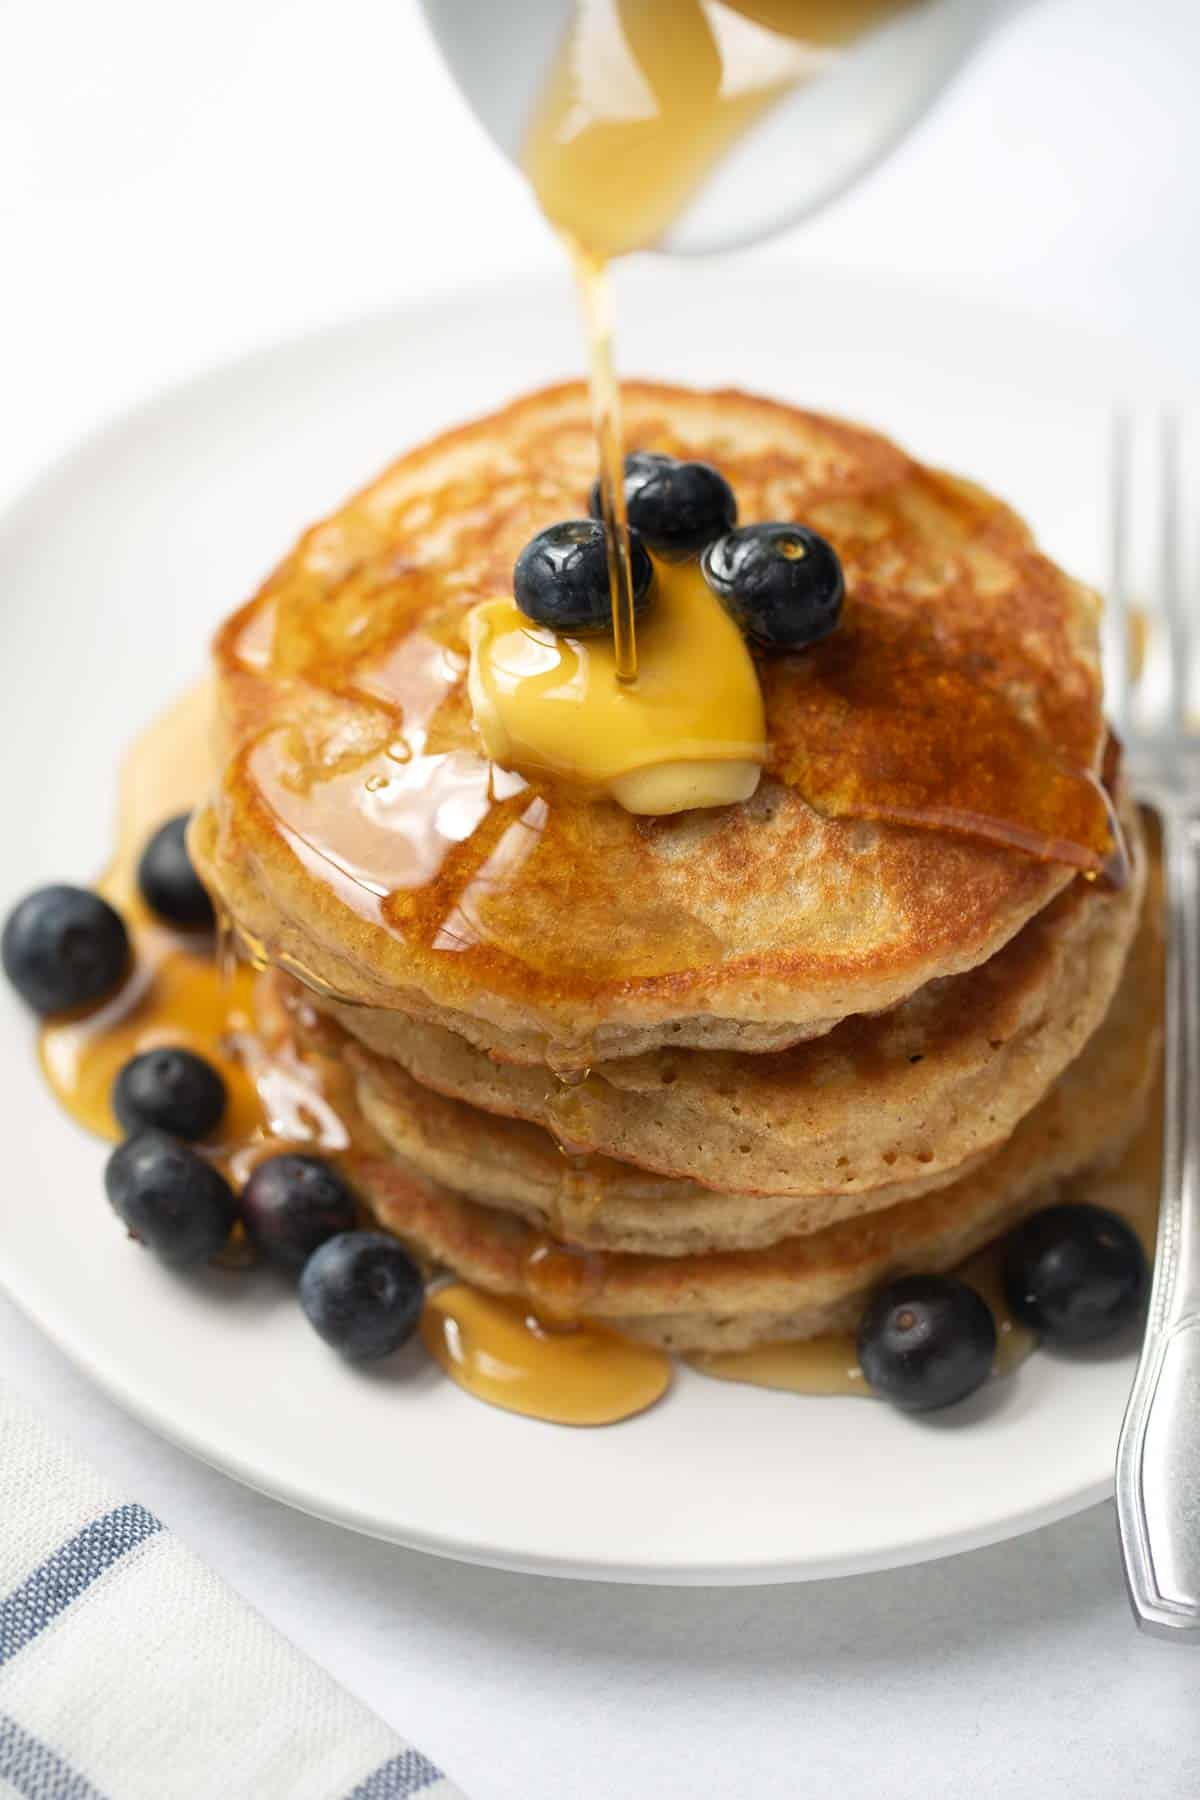 stack of gluten-free pancakes on white plate with syrup and blueberries